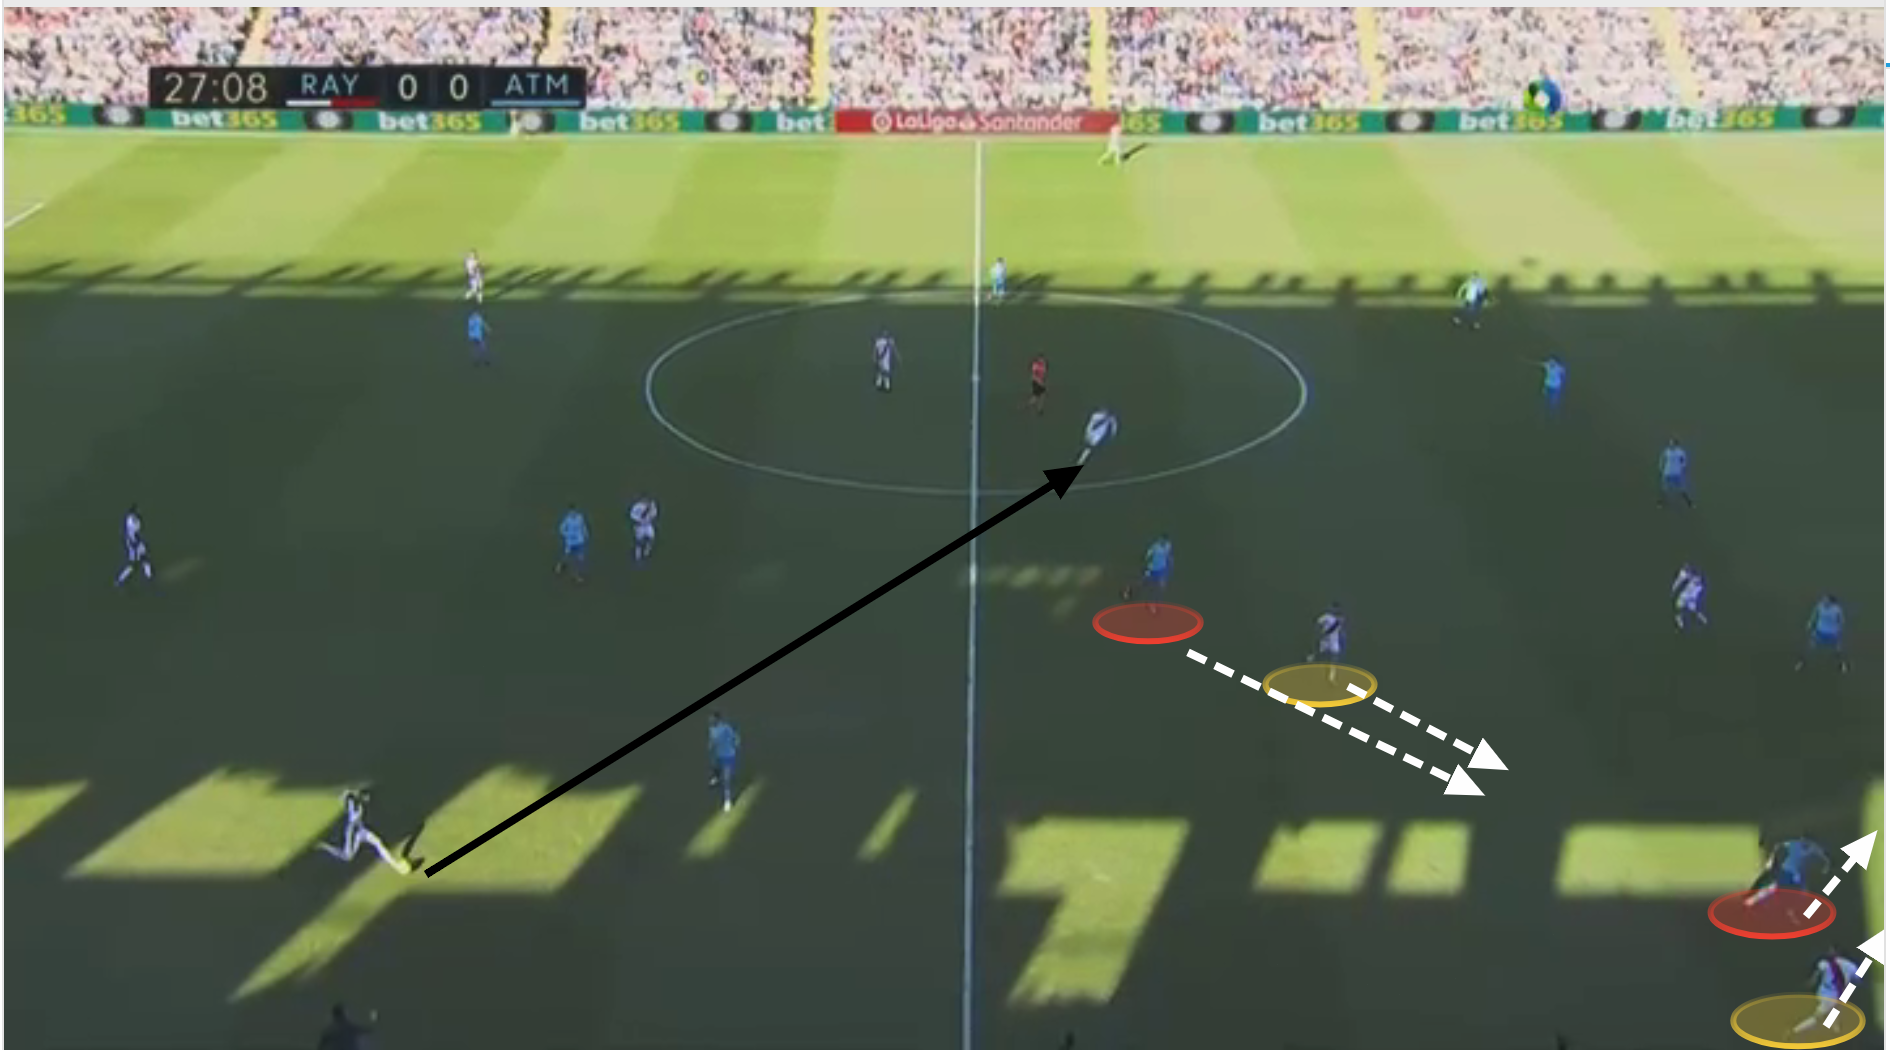 rayo-vallecano-atletico-madrid-tactical-analysis-statistics